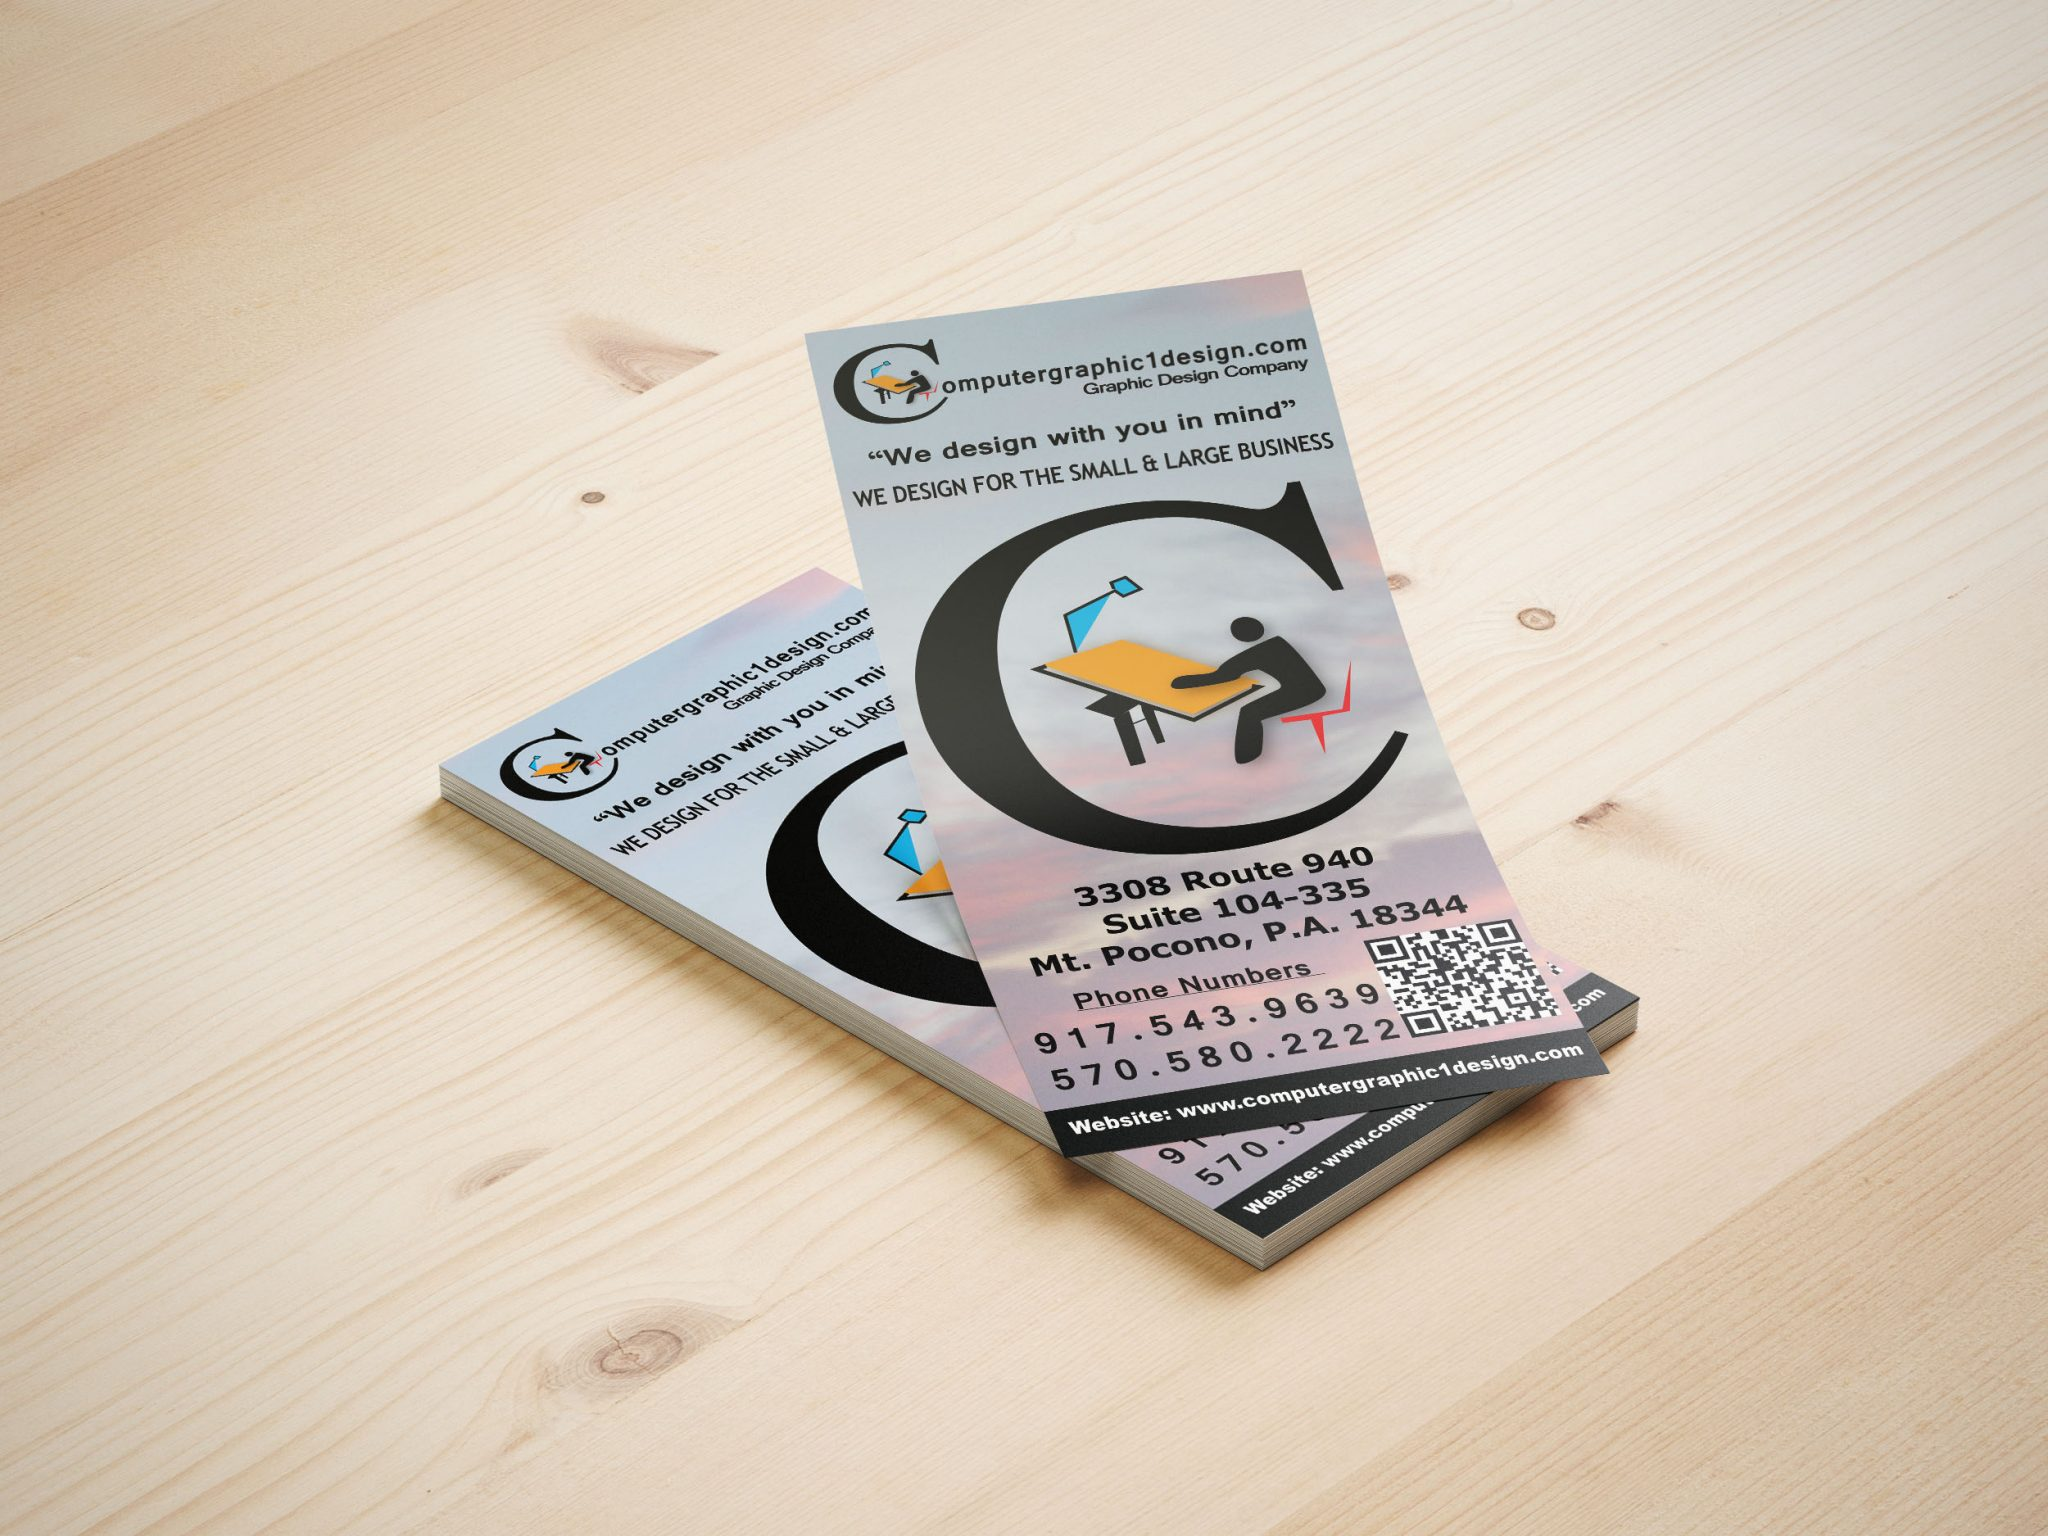 Rack Card & Buck slips  design